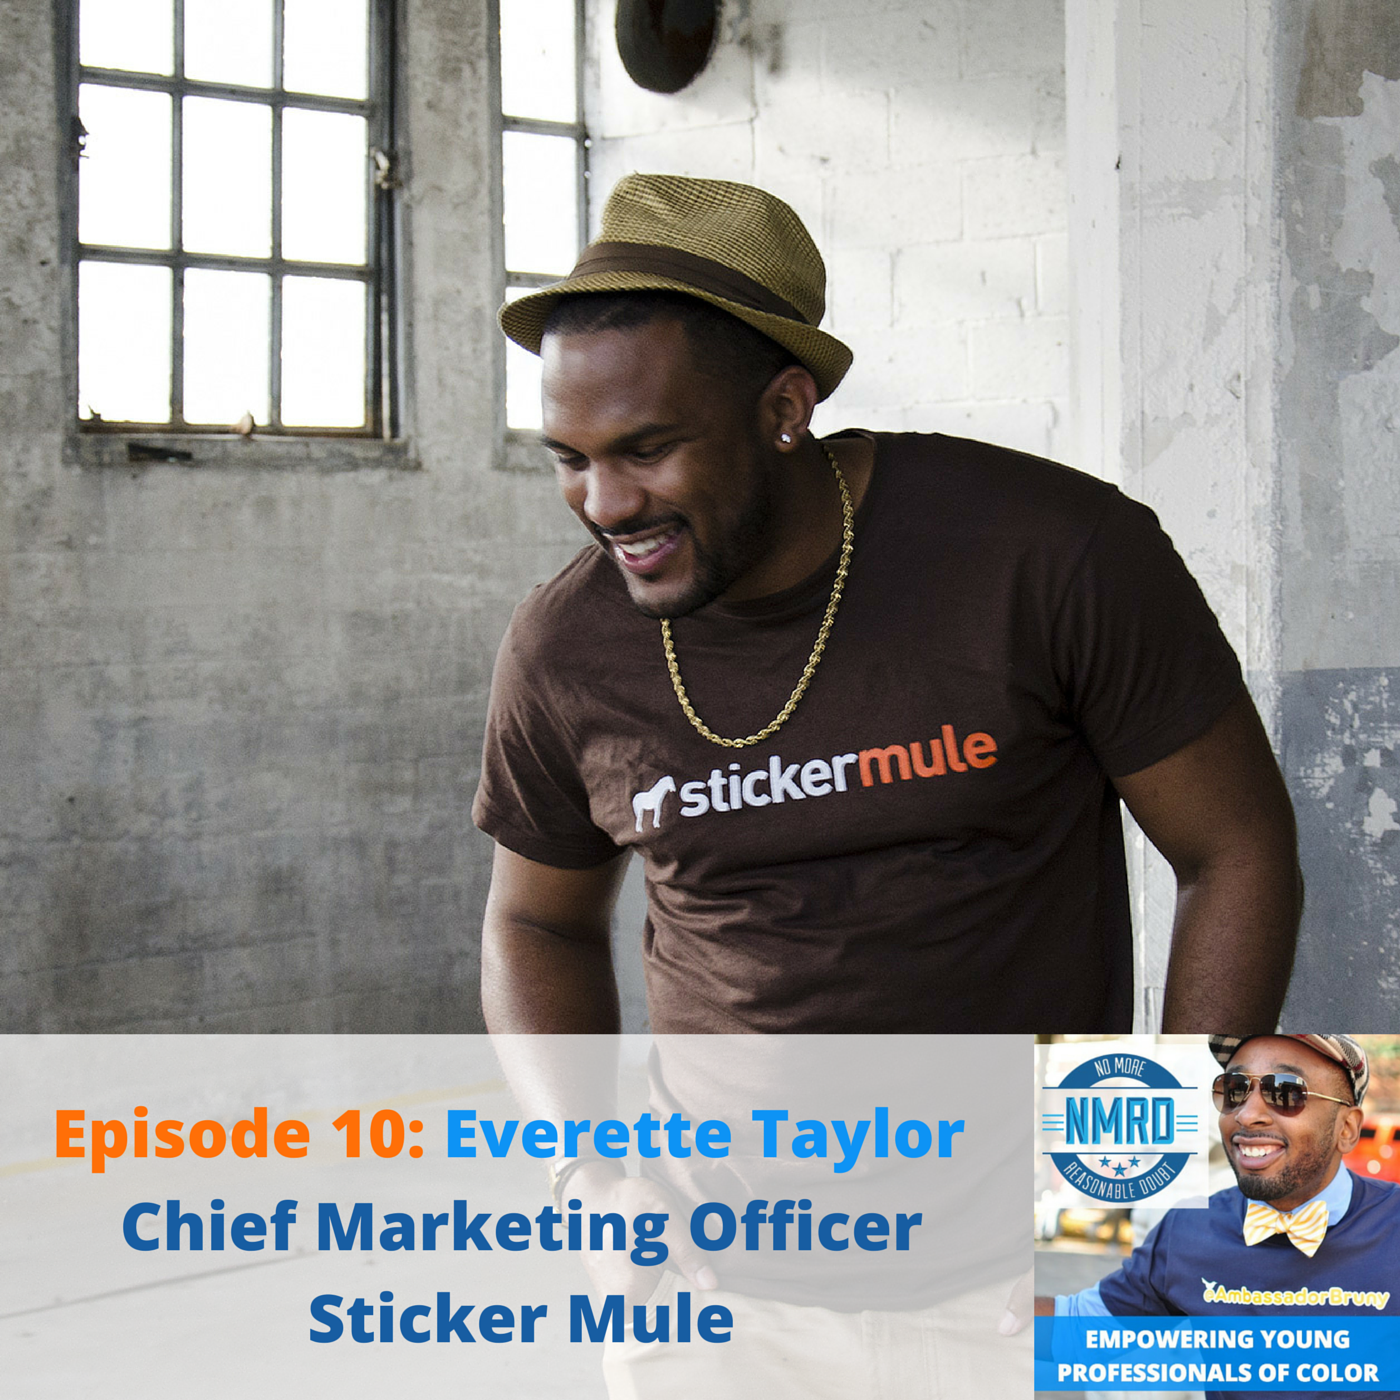 E10 – CMO, Sticker Mule, Everette Taylor